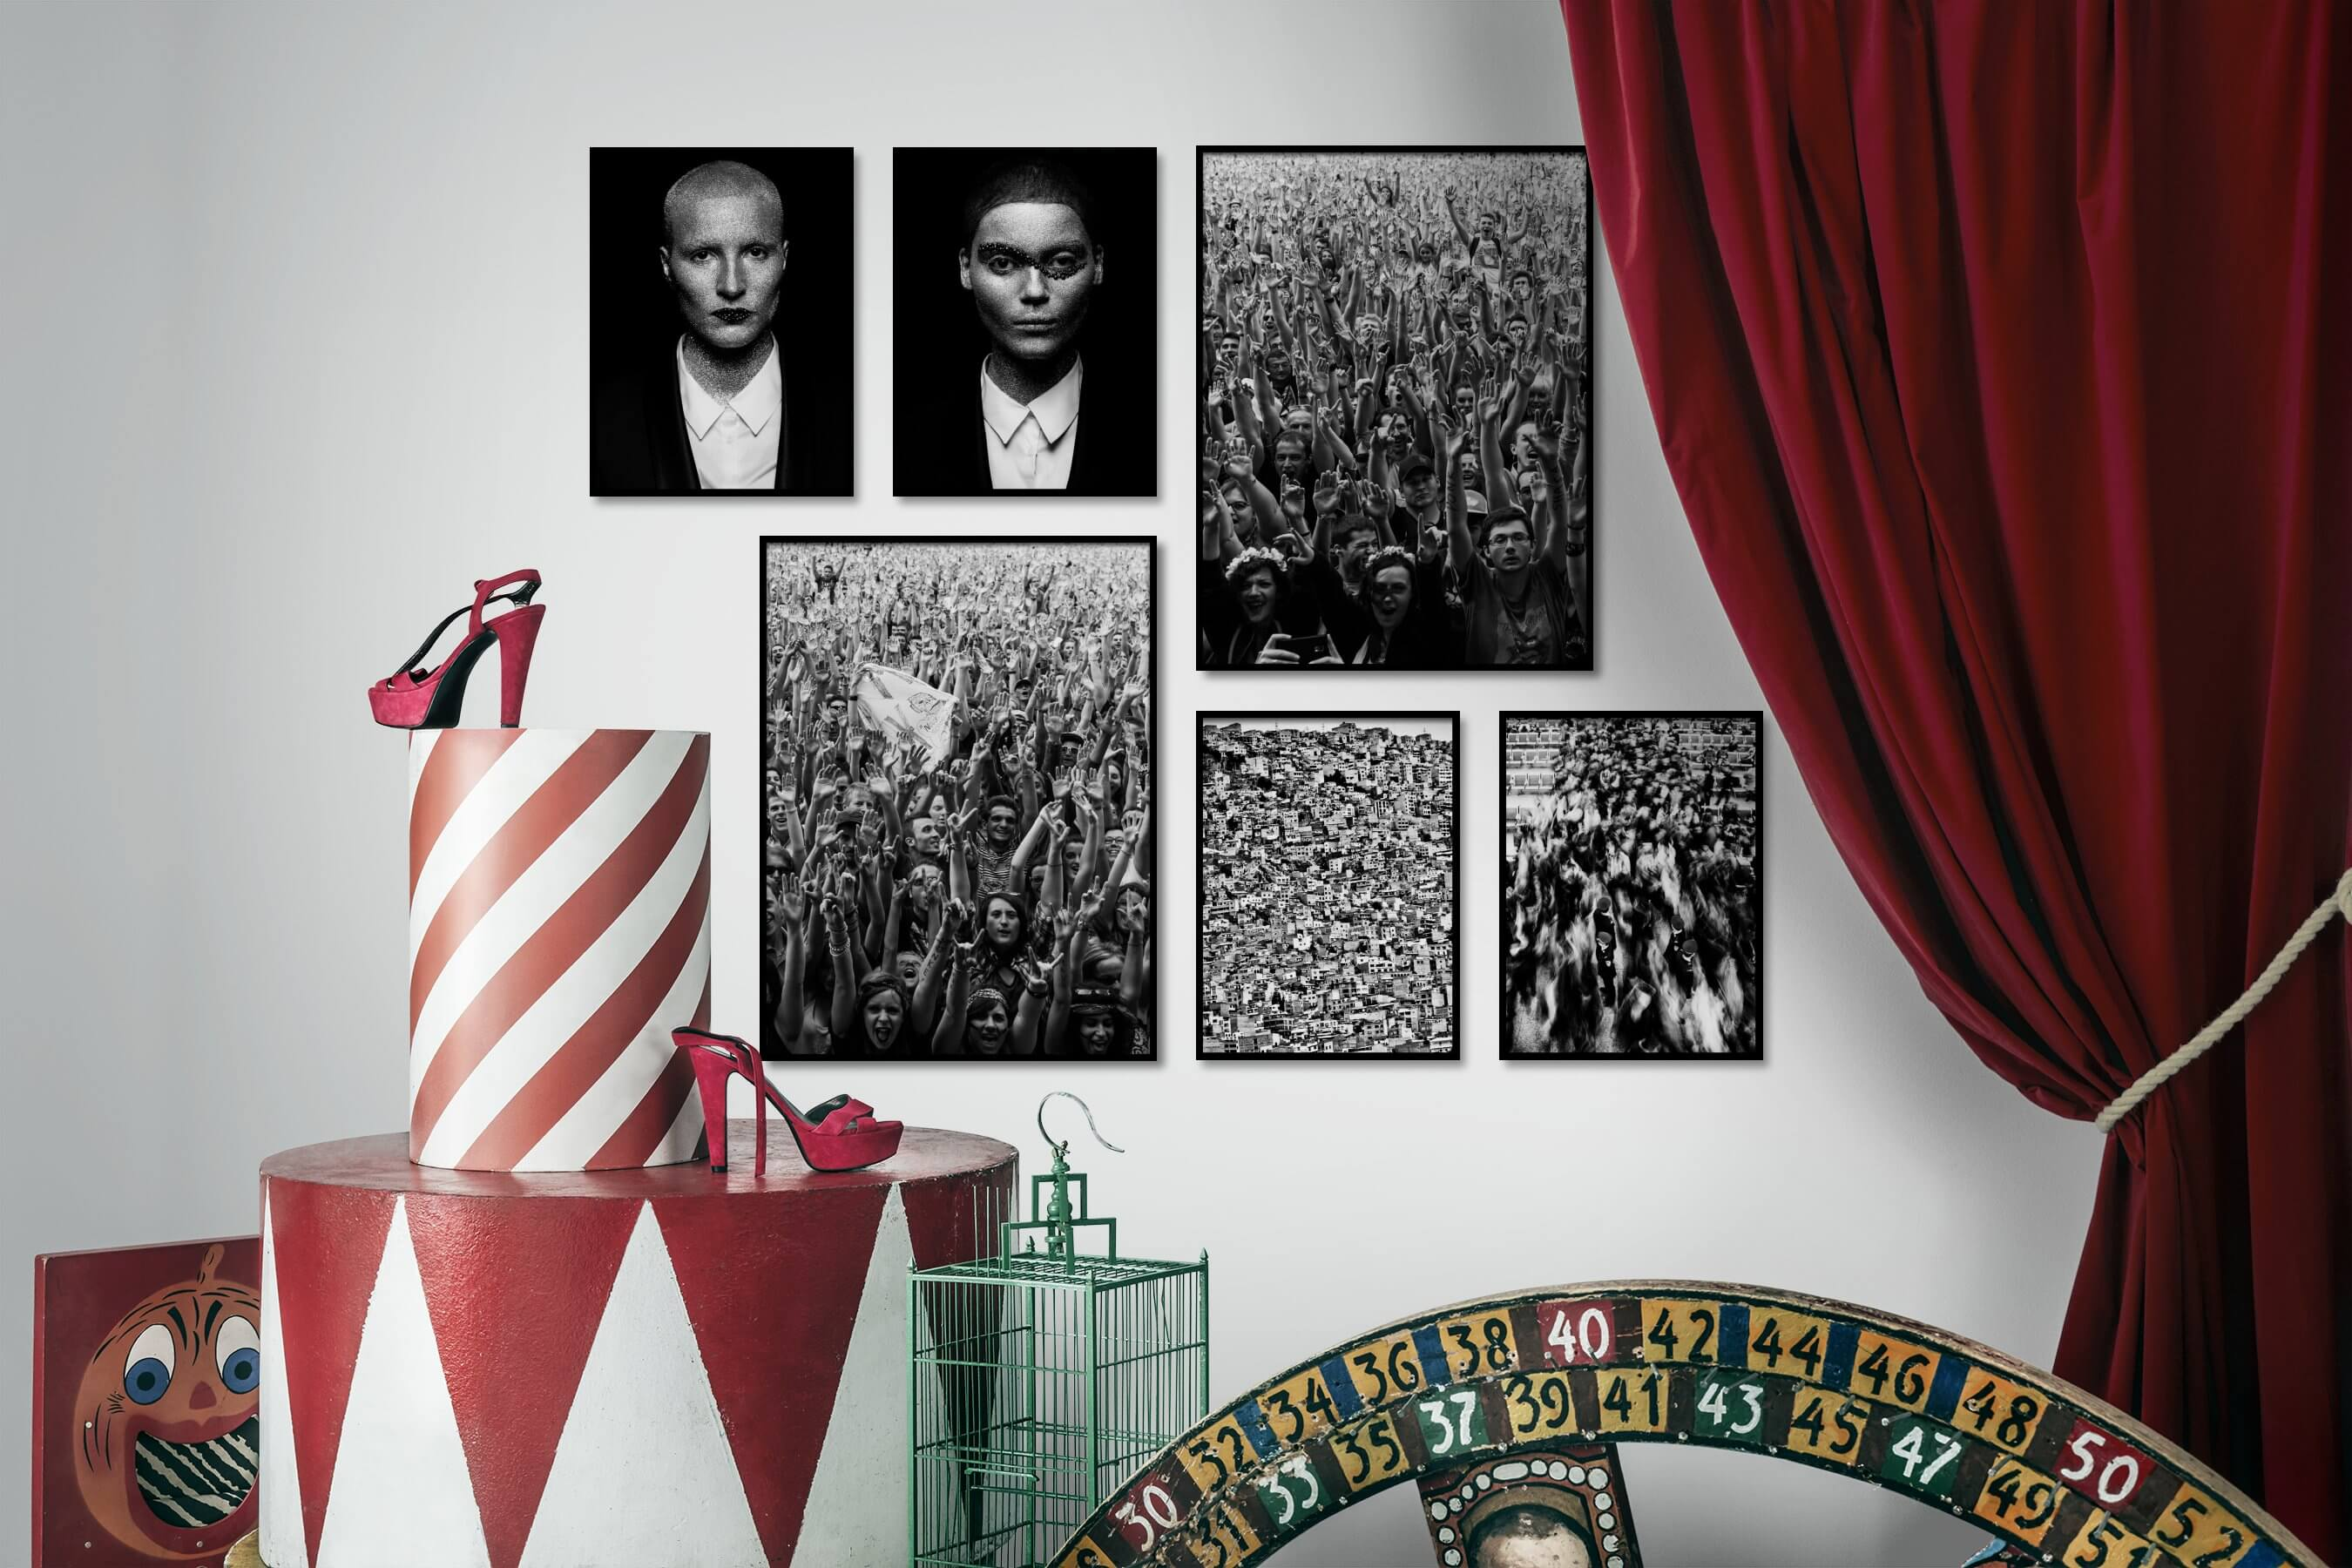 Gallery wall idea with six framed pictures arranged on a wall depicting Fashion & Beauty, Black & White, Dark Tones, For the Maximalist, and City Life